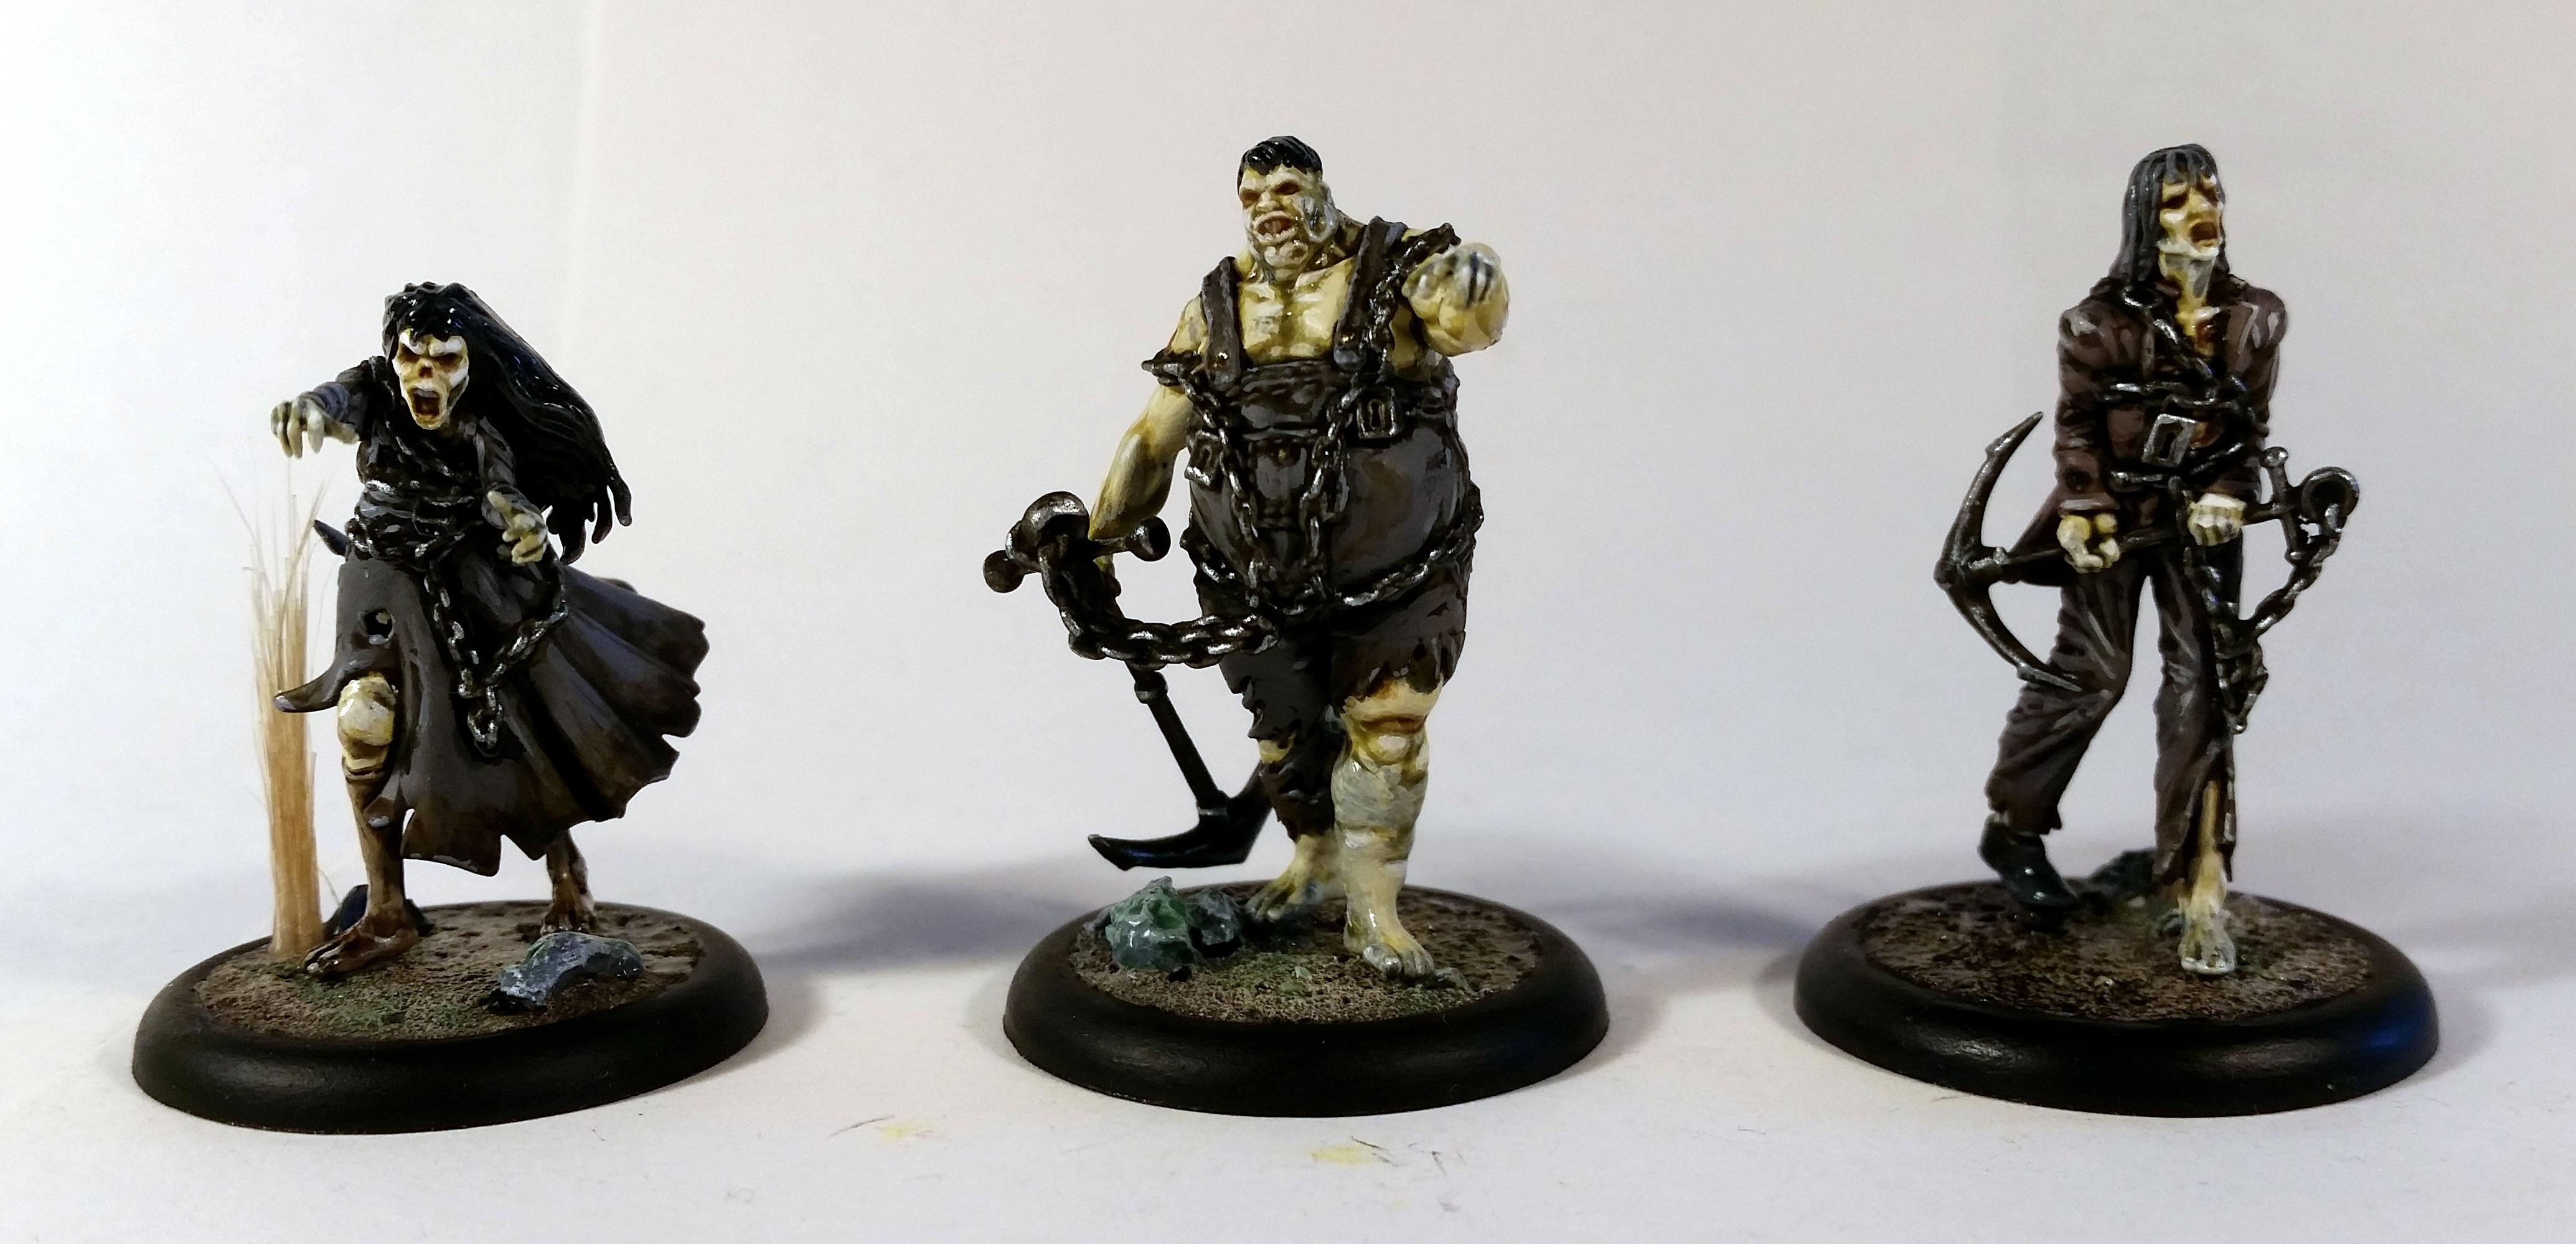 Malifaux, Resurrectionists, The Drowned